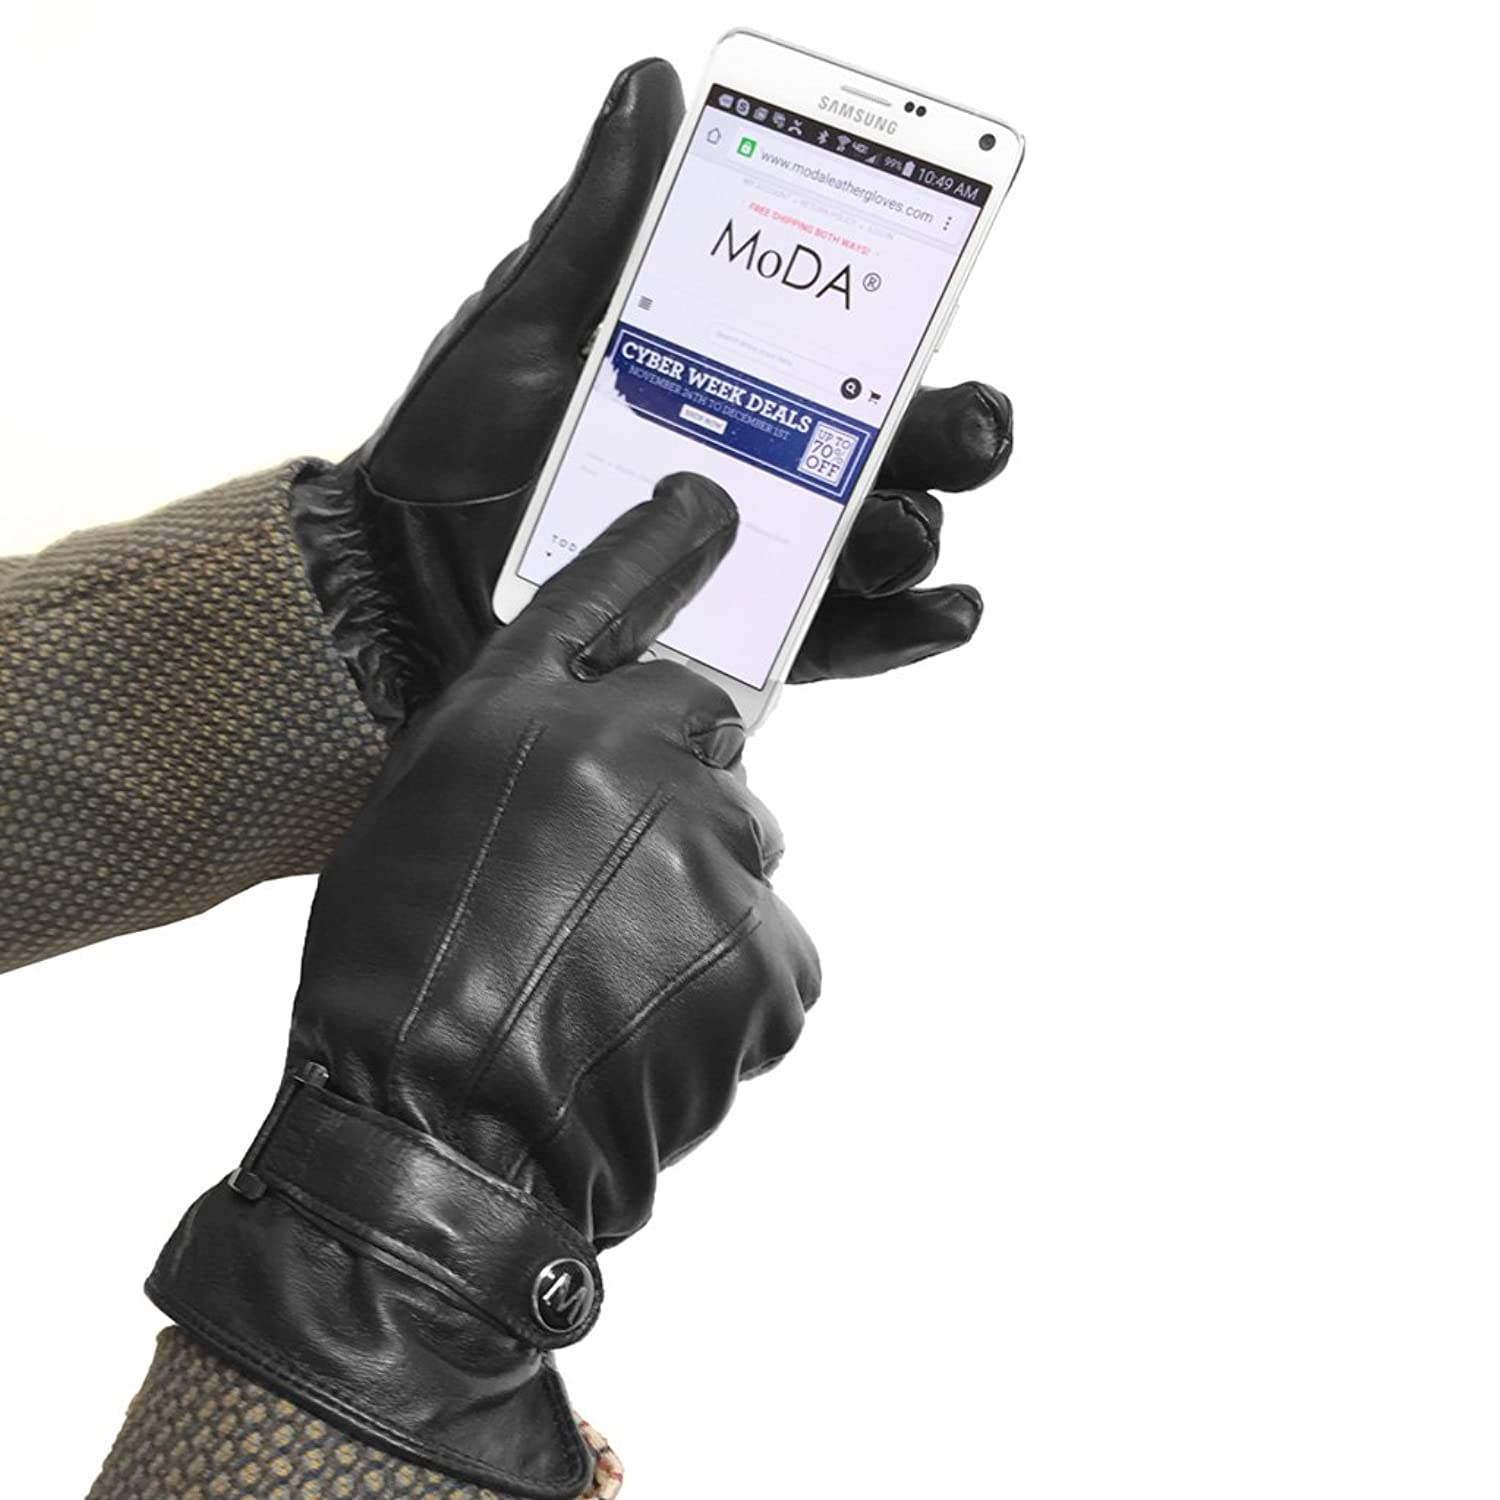 Vw leather driving gloves - Moda Mr Chicago Best Winter Cold Weather Men S Genuine Leather Gloves With Touch Function At Amazon Men S Clothing Store